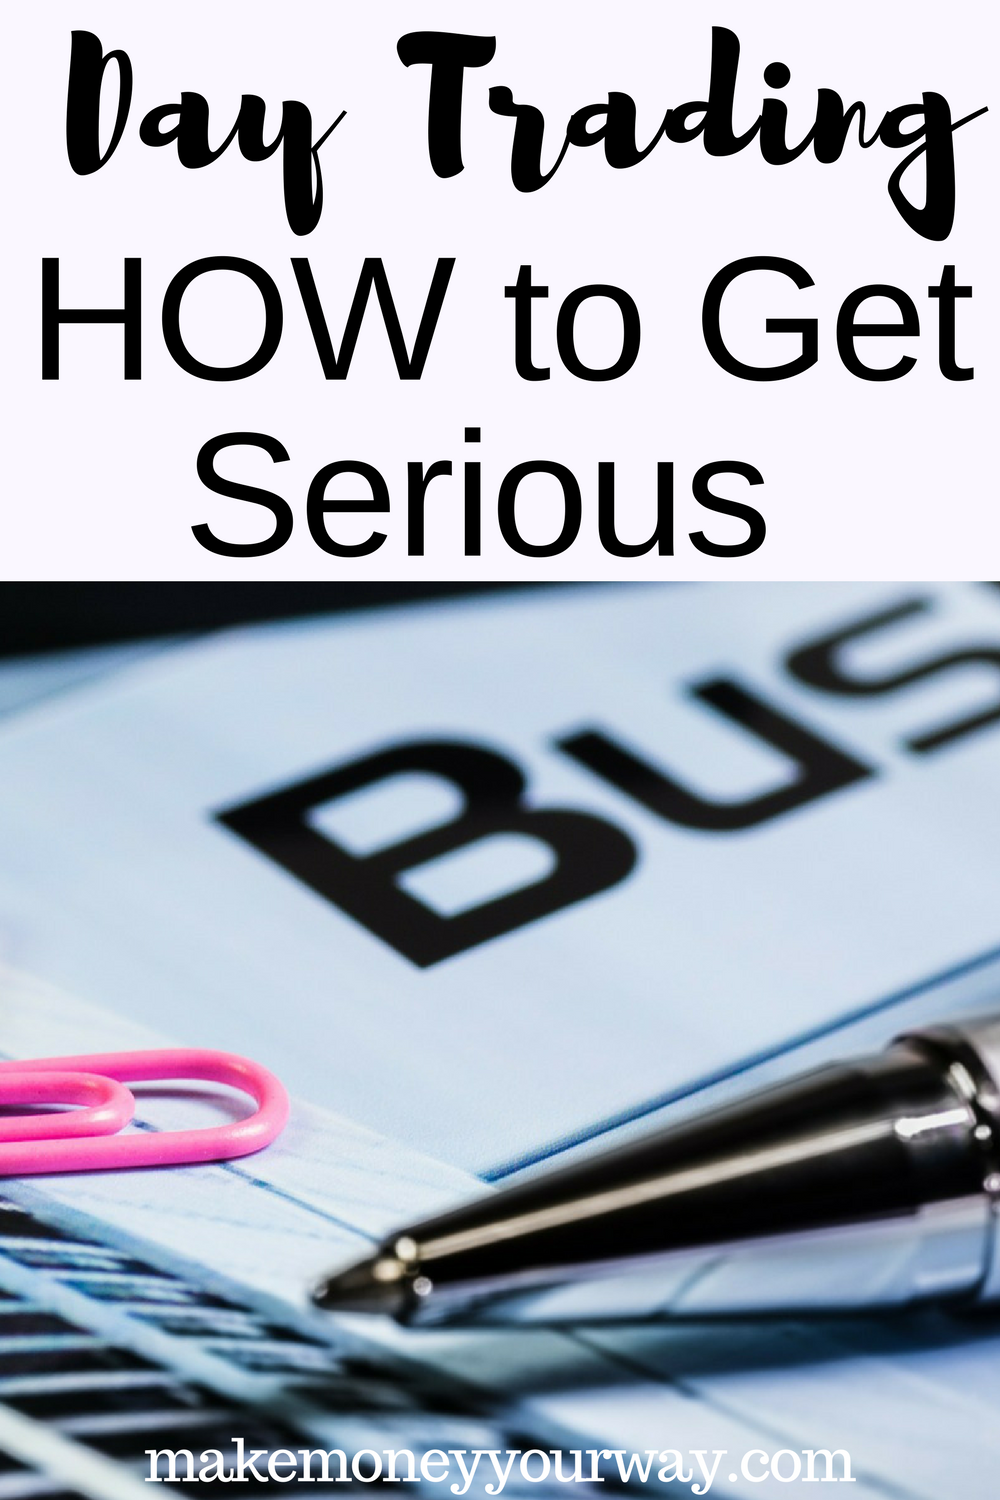 Day Trading - How to Get Serious